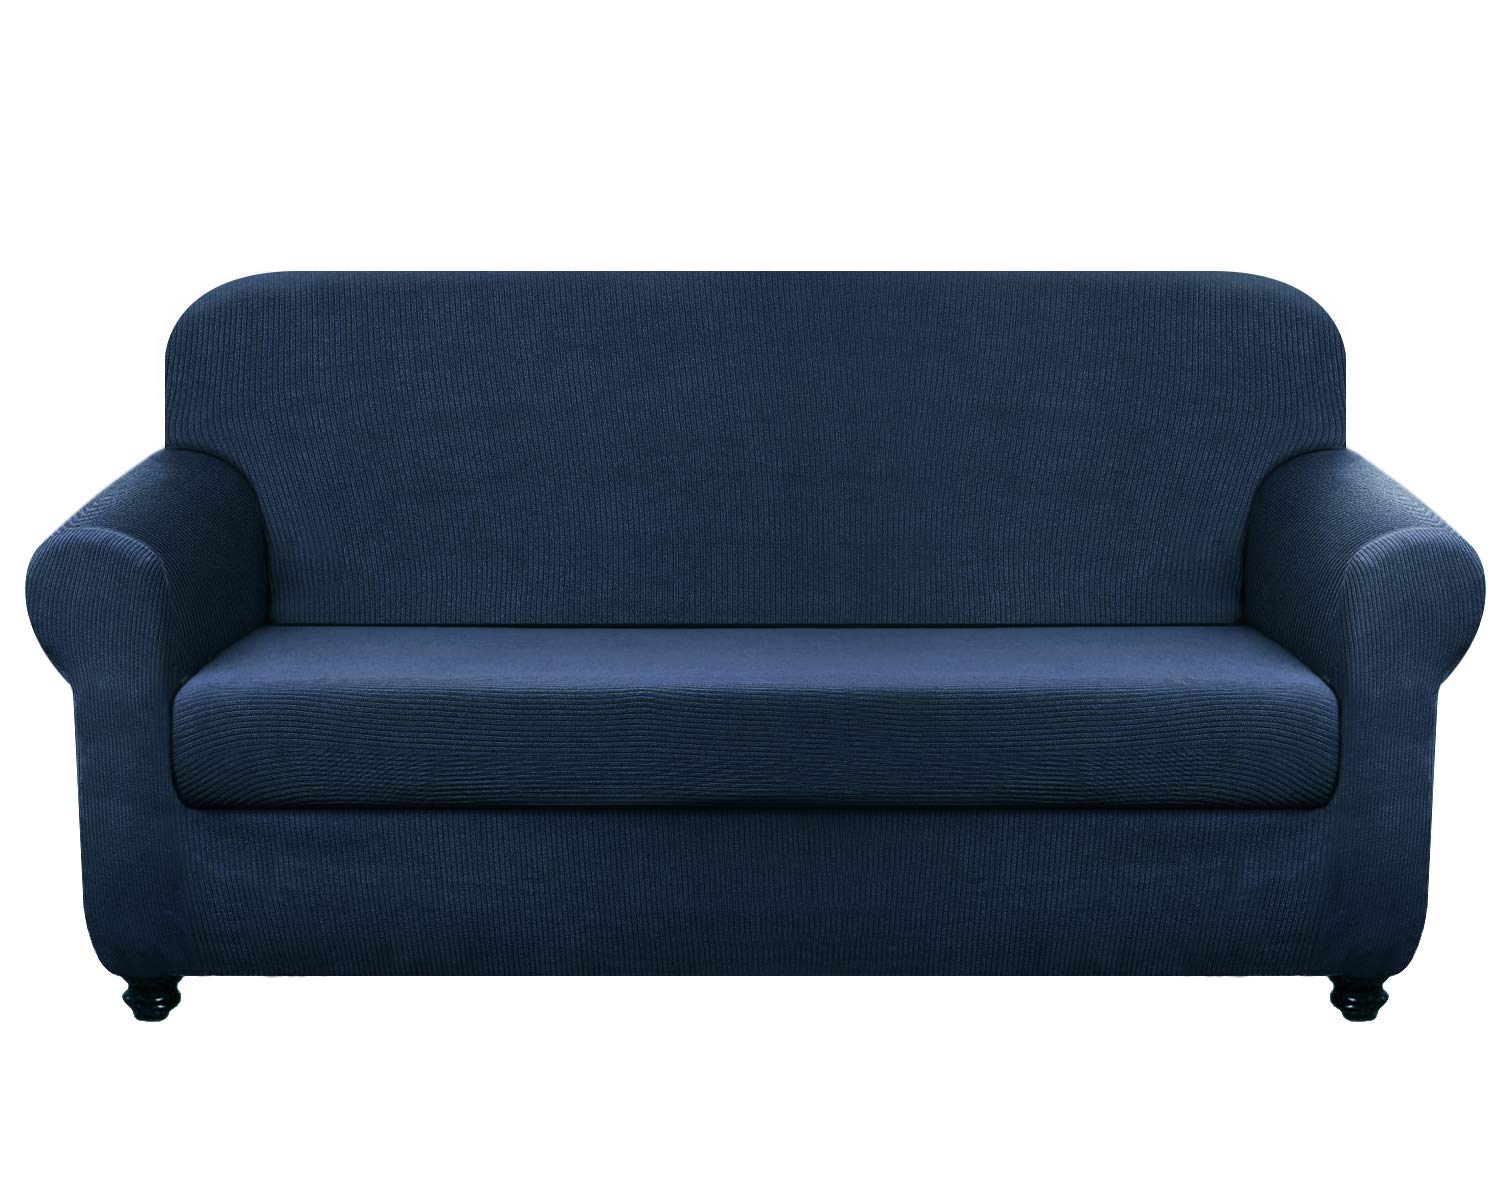 Chelzen Stretch Loveseat Covers Living Room 2-Piece Couch Covers Striped Furniture Protectors Spandex Fabric Dog Sofa Slipcovers (Loveseat, Navy Blue)